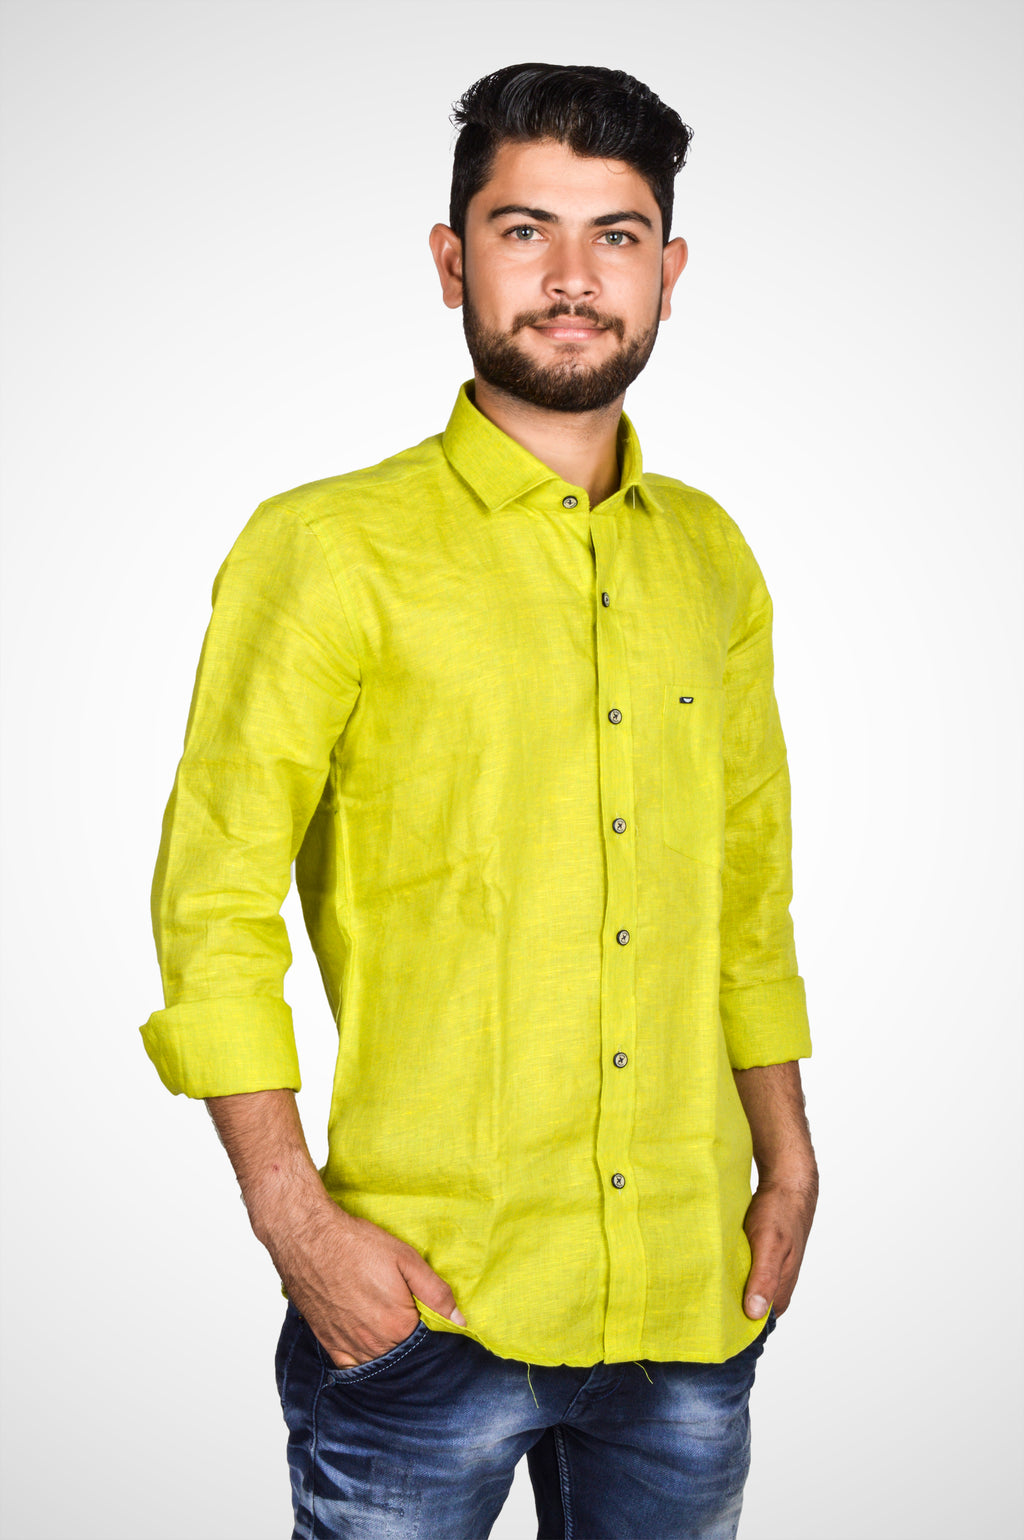 Zerox Men's Plain Pure Linen Full Sleeves Regular Fit Formal Shirt (Parrot Green) By Indians Boutique